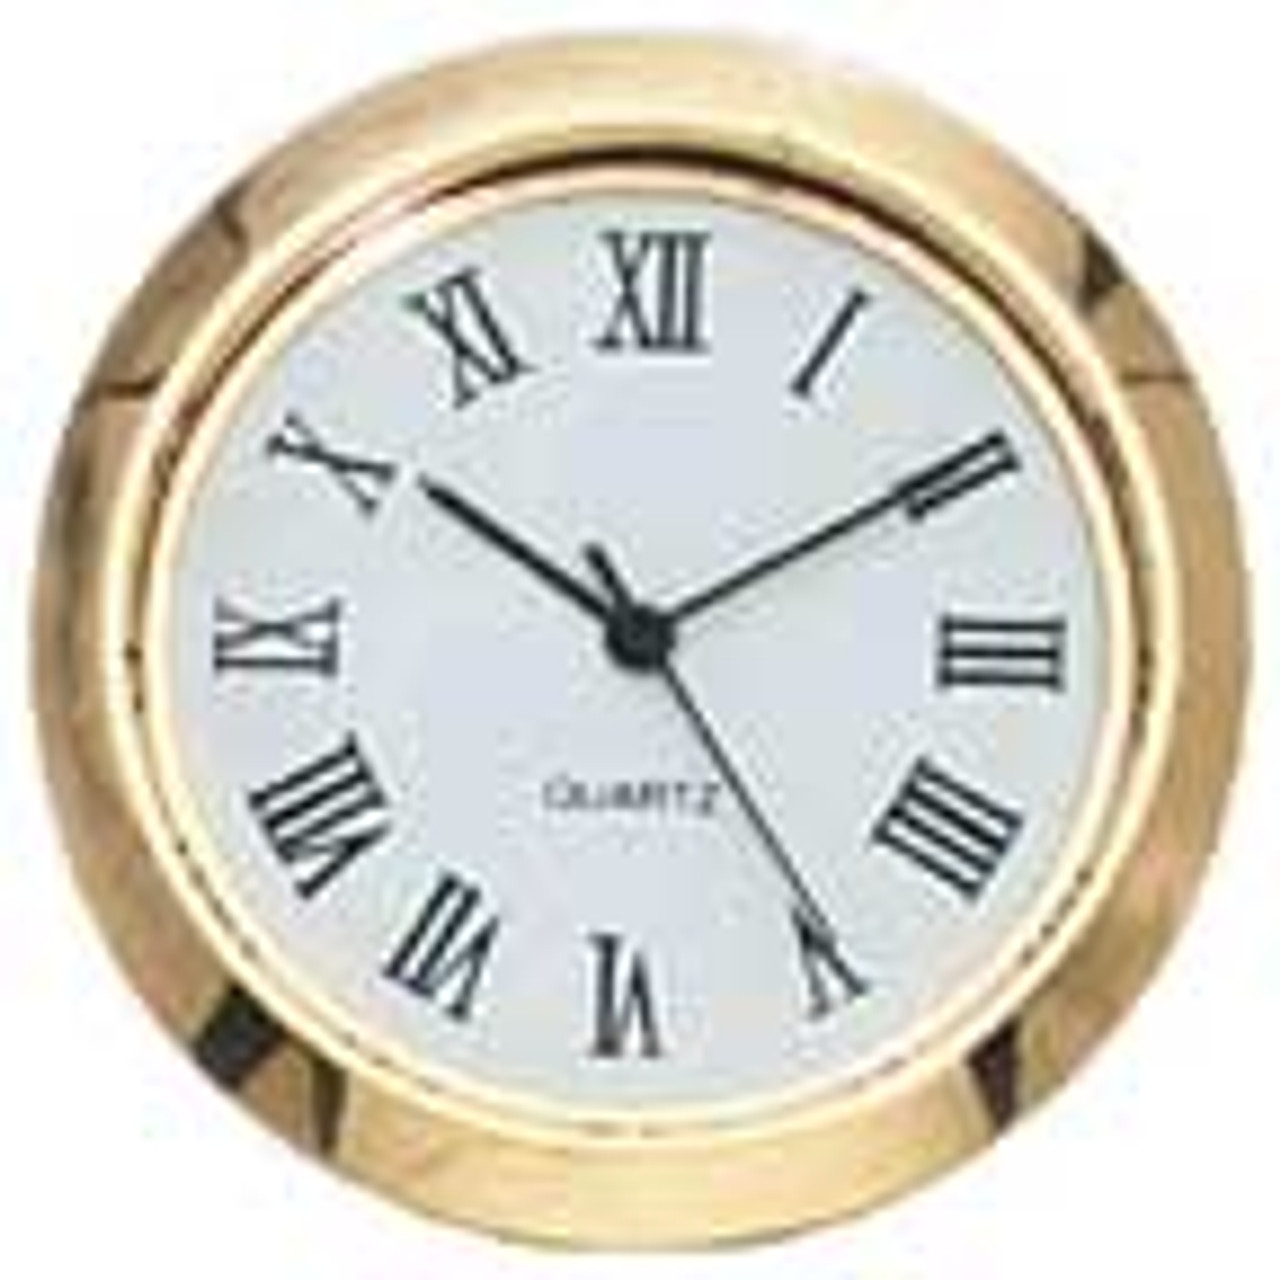 1-7/16 (36mm) Ivory Face Roman Glass Lens Clock Insert/Fit Up